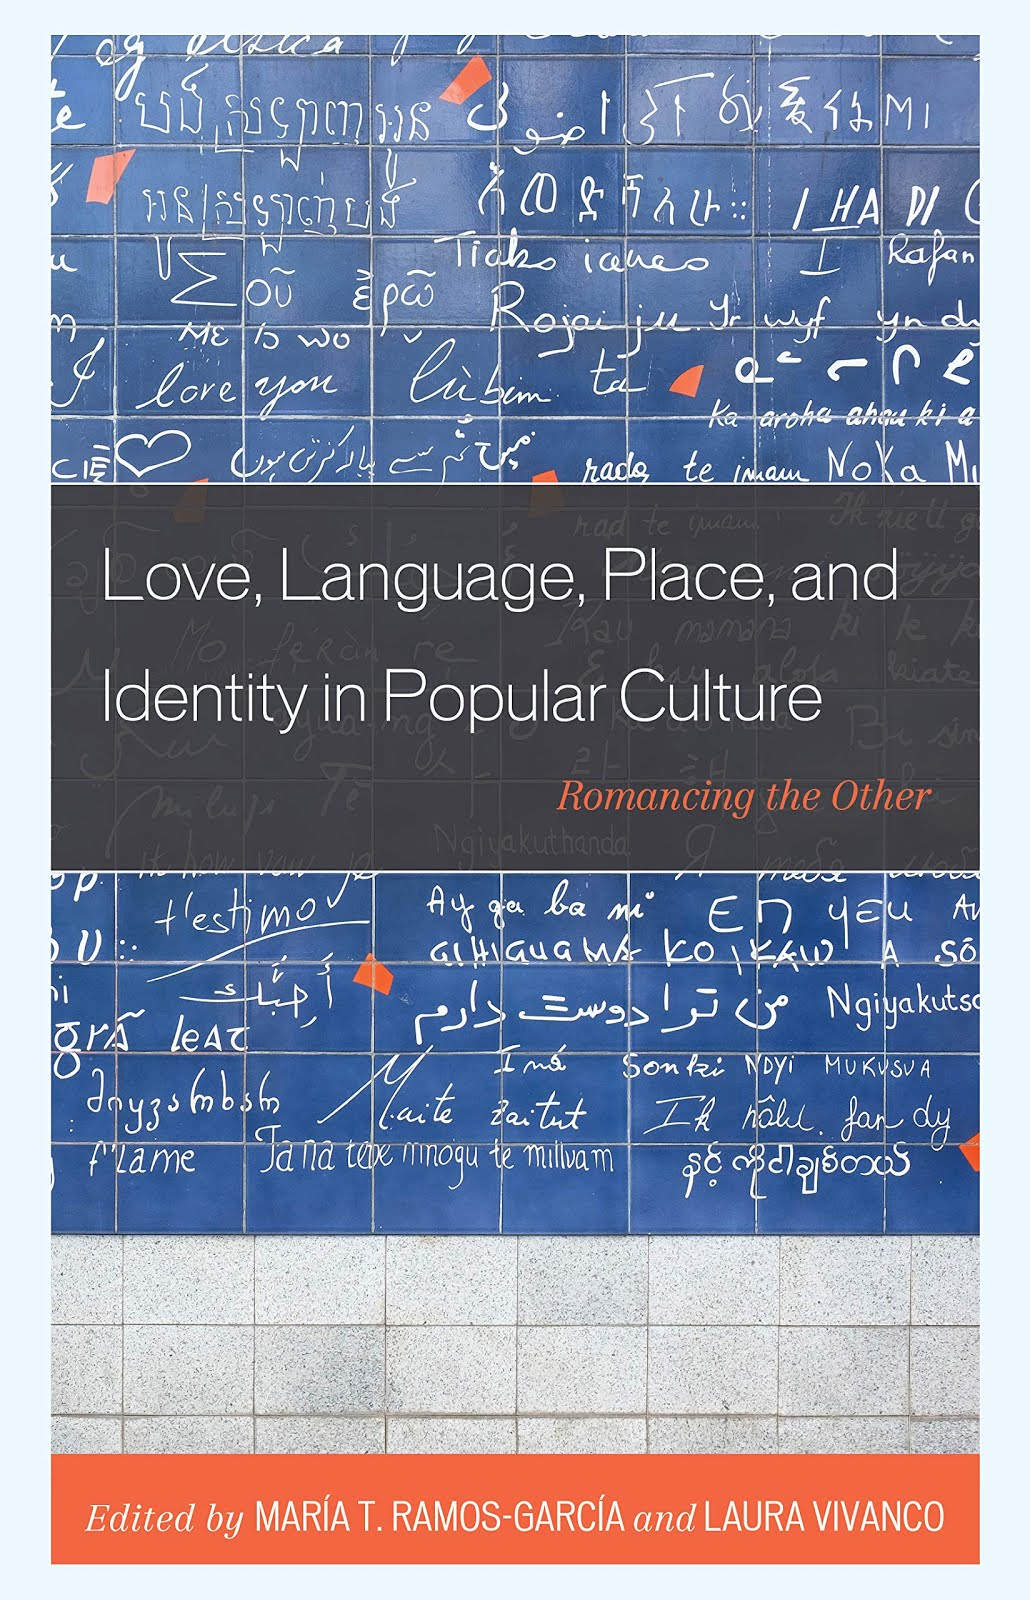 Love, Language, Place, and Identity in Popular Culture: Romancing the Other